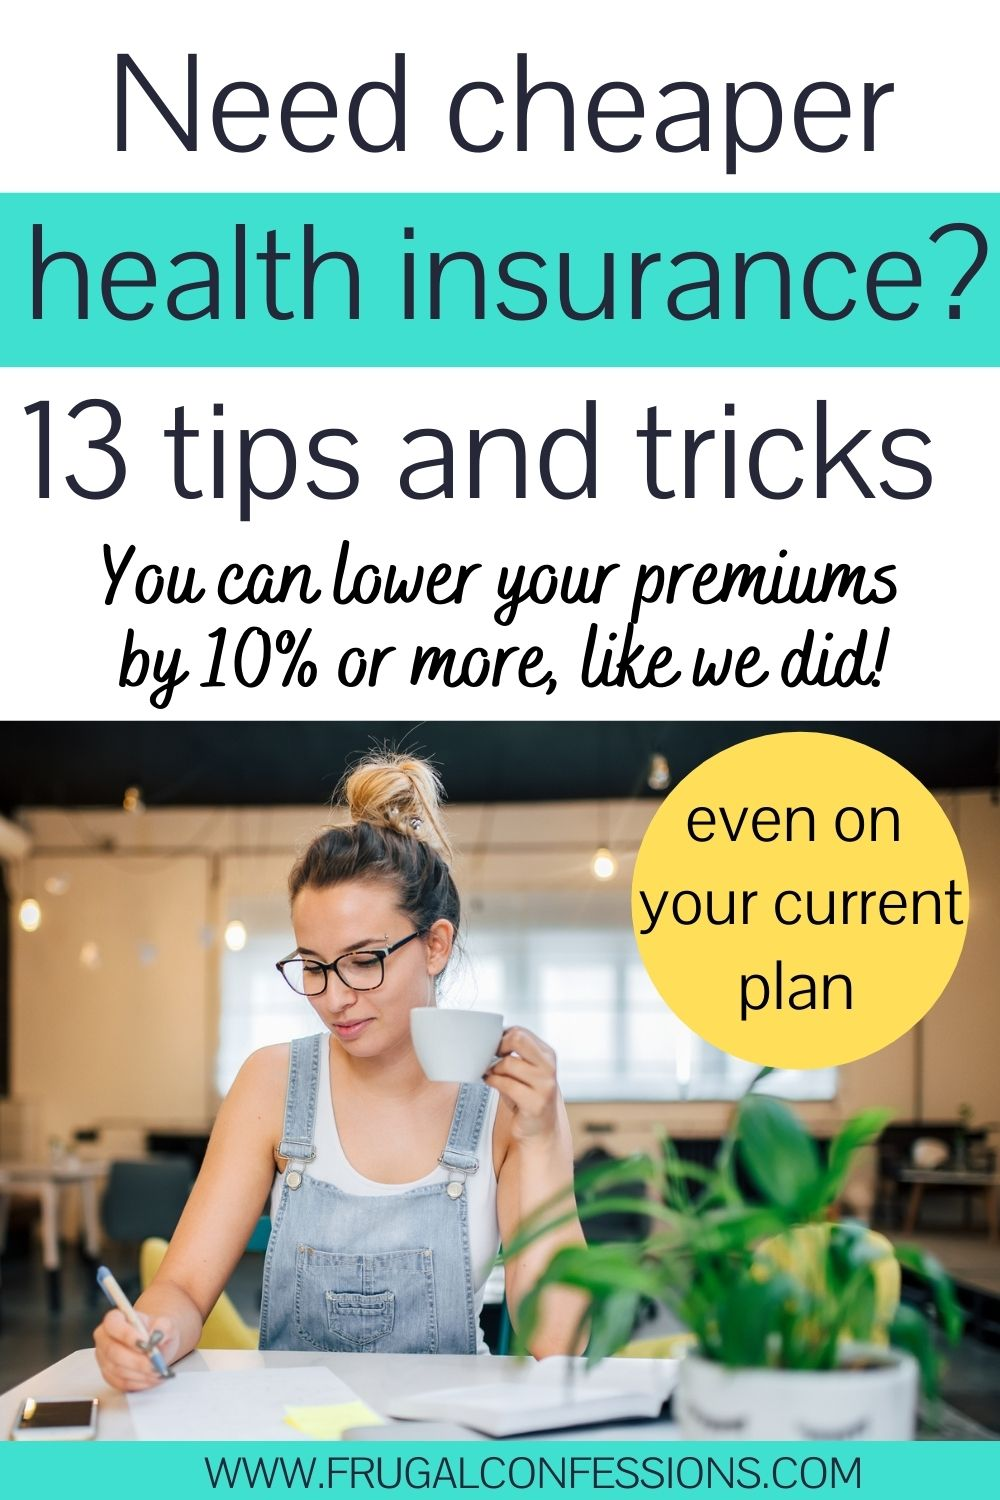 """woman in her thirties at desk working on something with coffee, text overlay """"need cheaper health insurance? 13 tips and tricks to lower premiums at least 10%"""""""